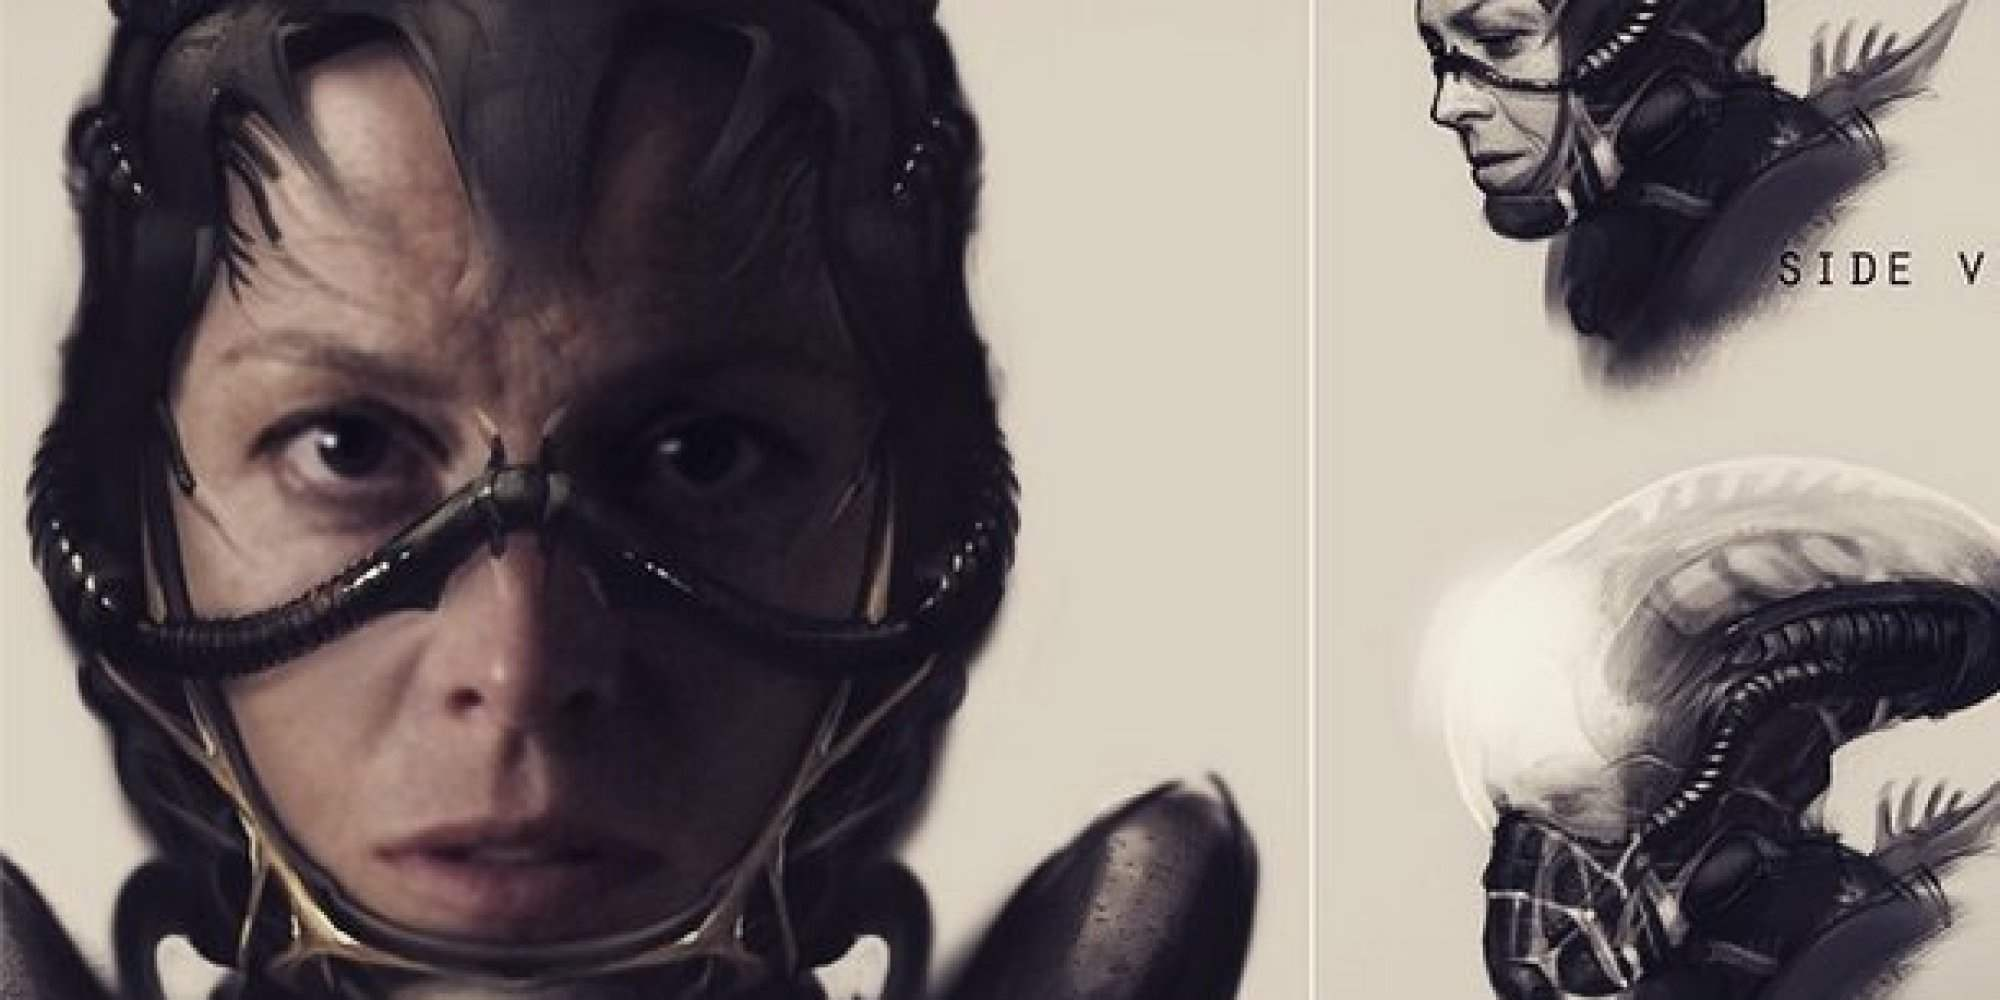 Neill Blomkamp's Alien Artwork